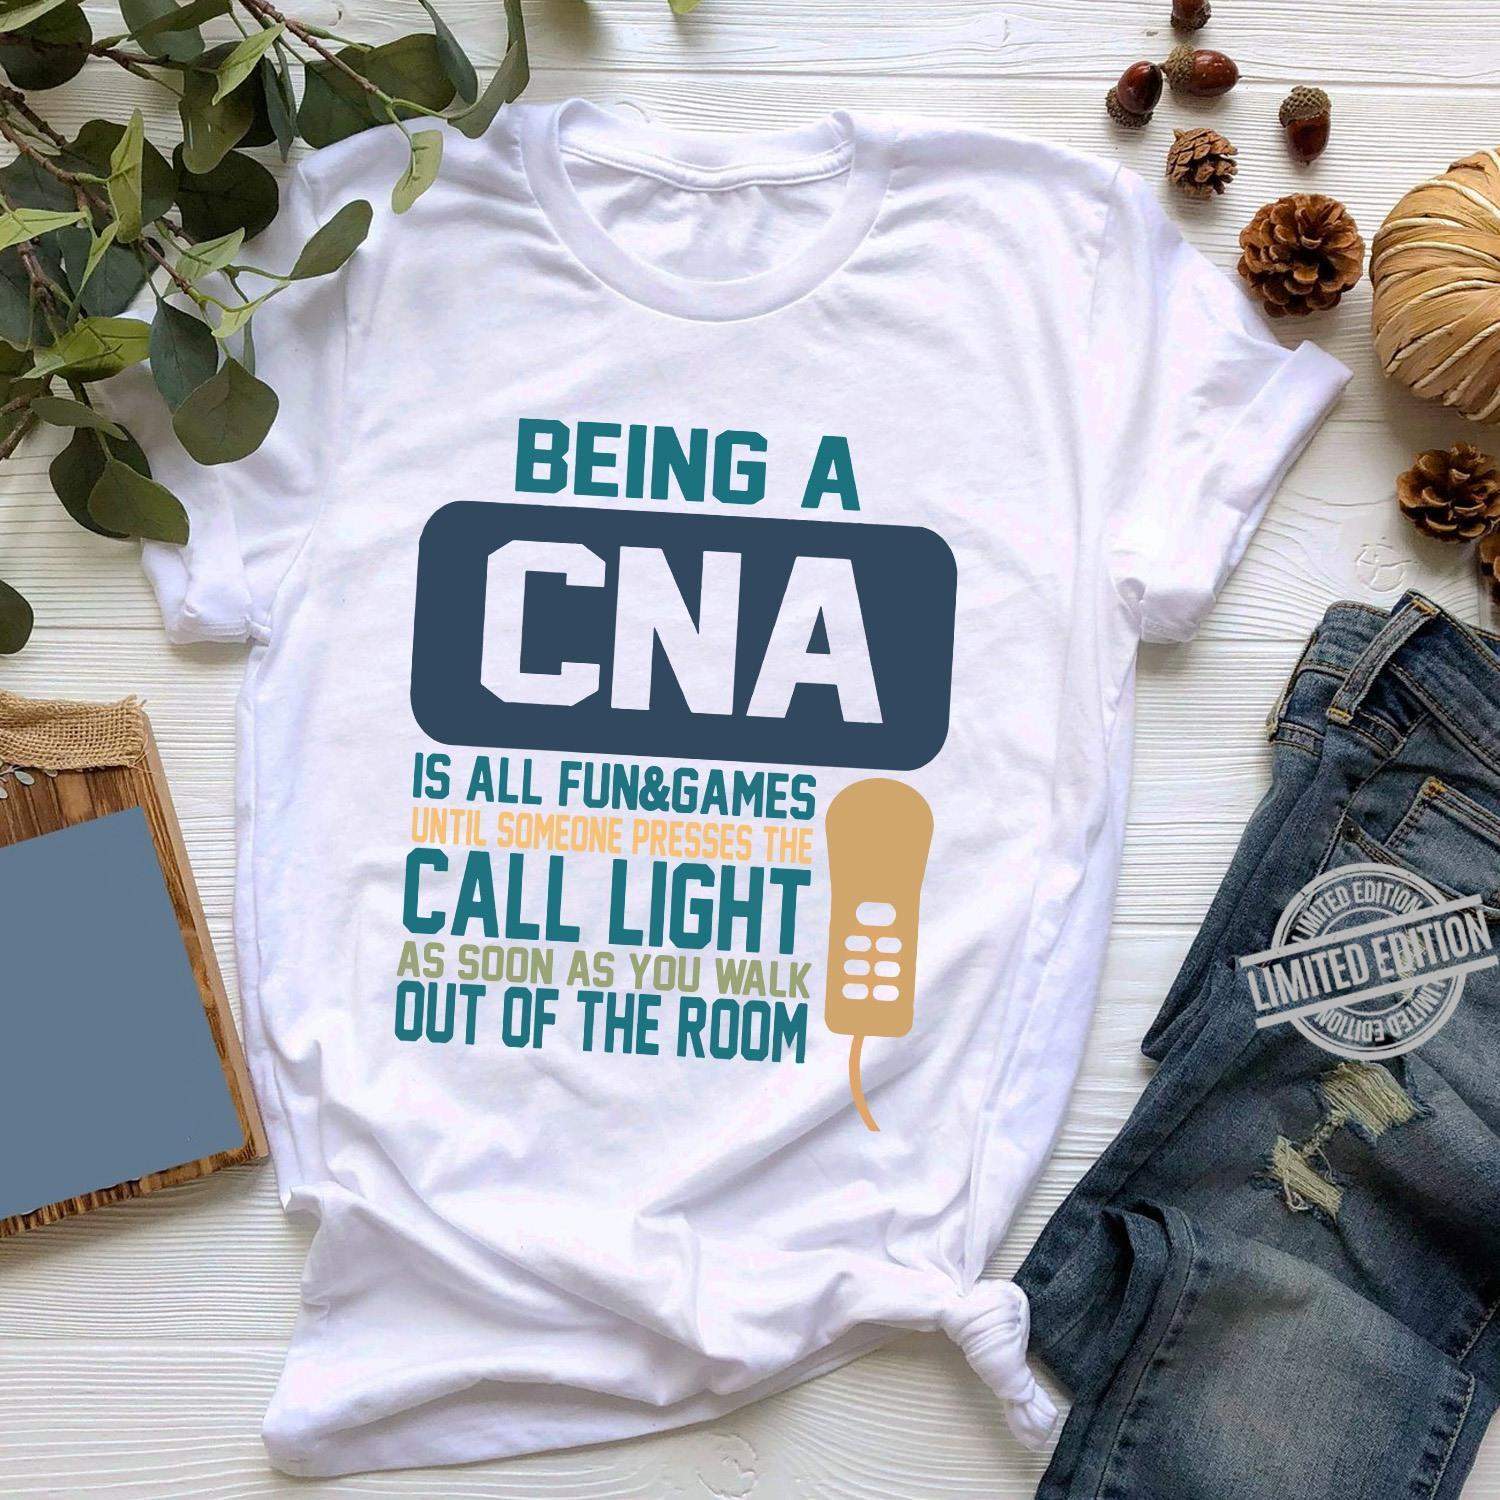 Being A CNA Is All Fun&Games Until Someone Presses The Call Light As Soon As You Walk Out Of The Room Shirt